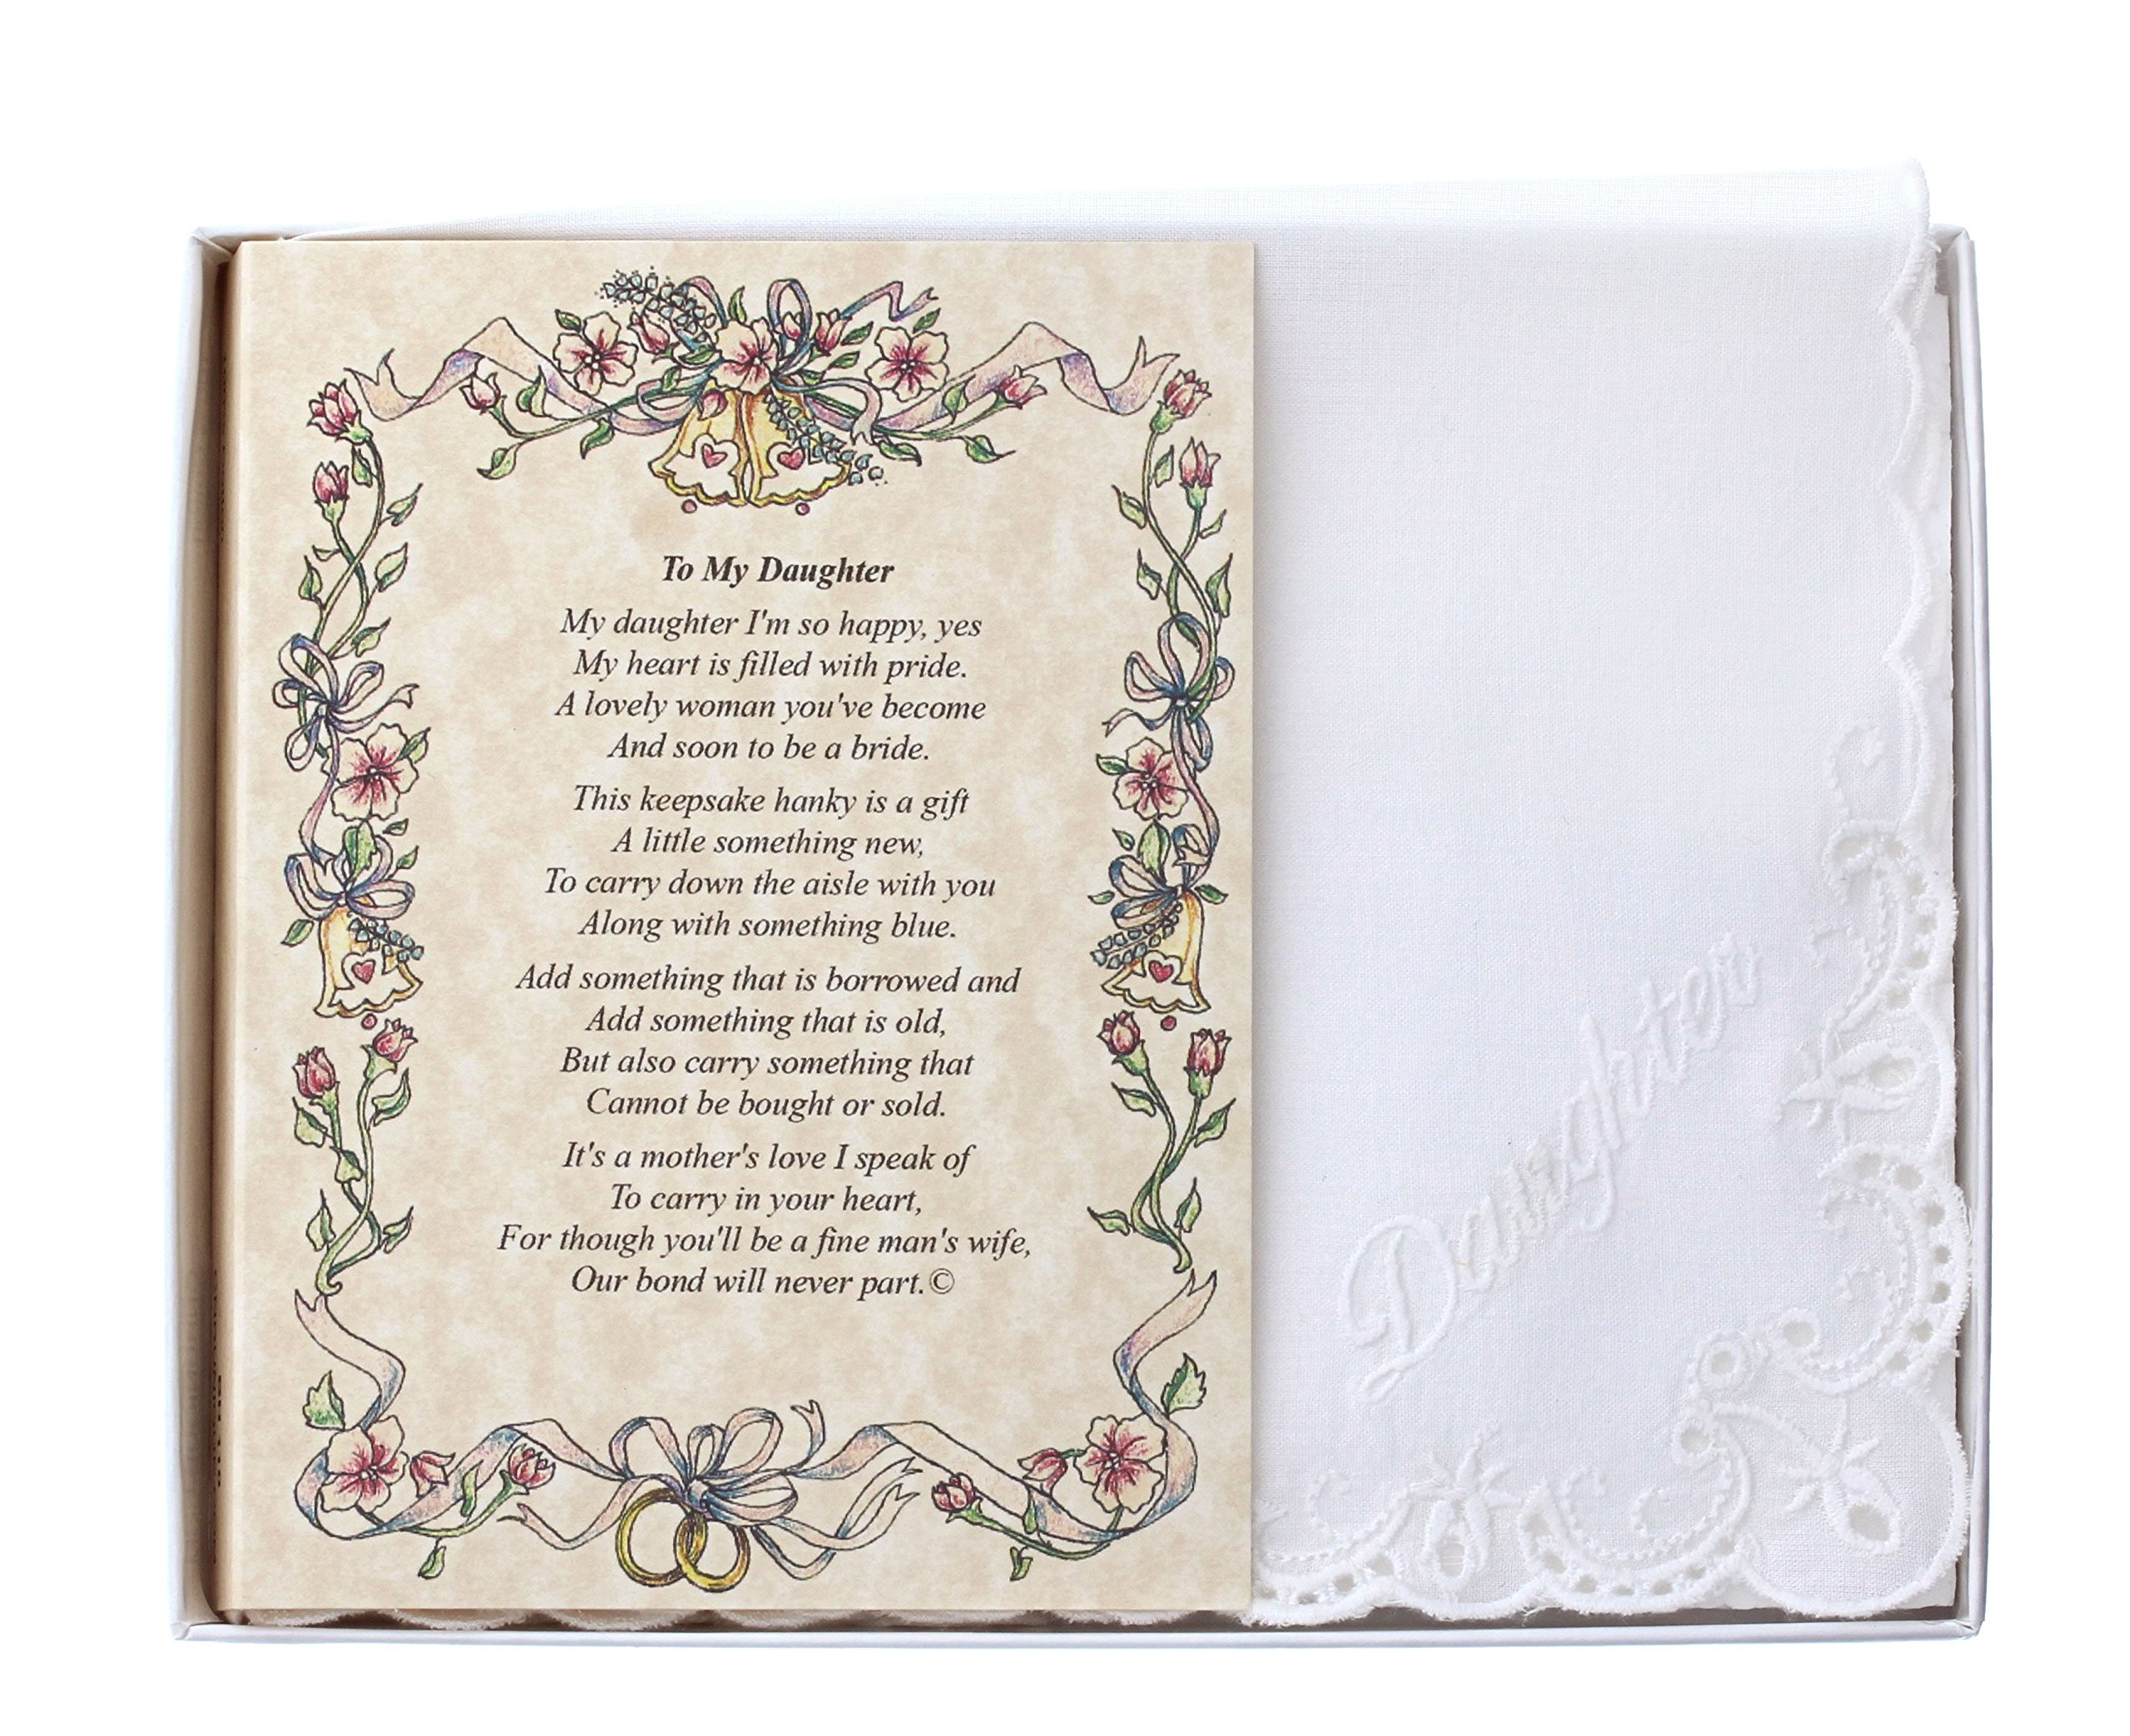 Wedding Handkerchief Poetry Hankie (Mother to Daughter) White, Lace Embroidered Bridal Keepsake, Beautiful Poem | Long-Lasting Memento for the Bride | Includes Gift Storage Box